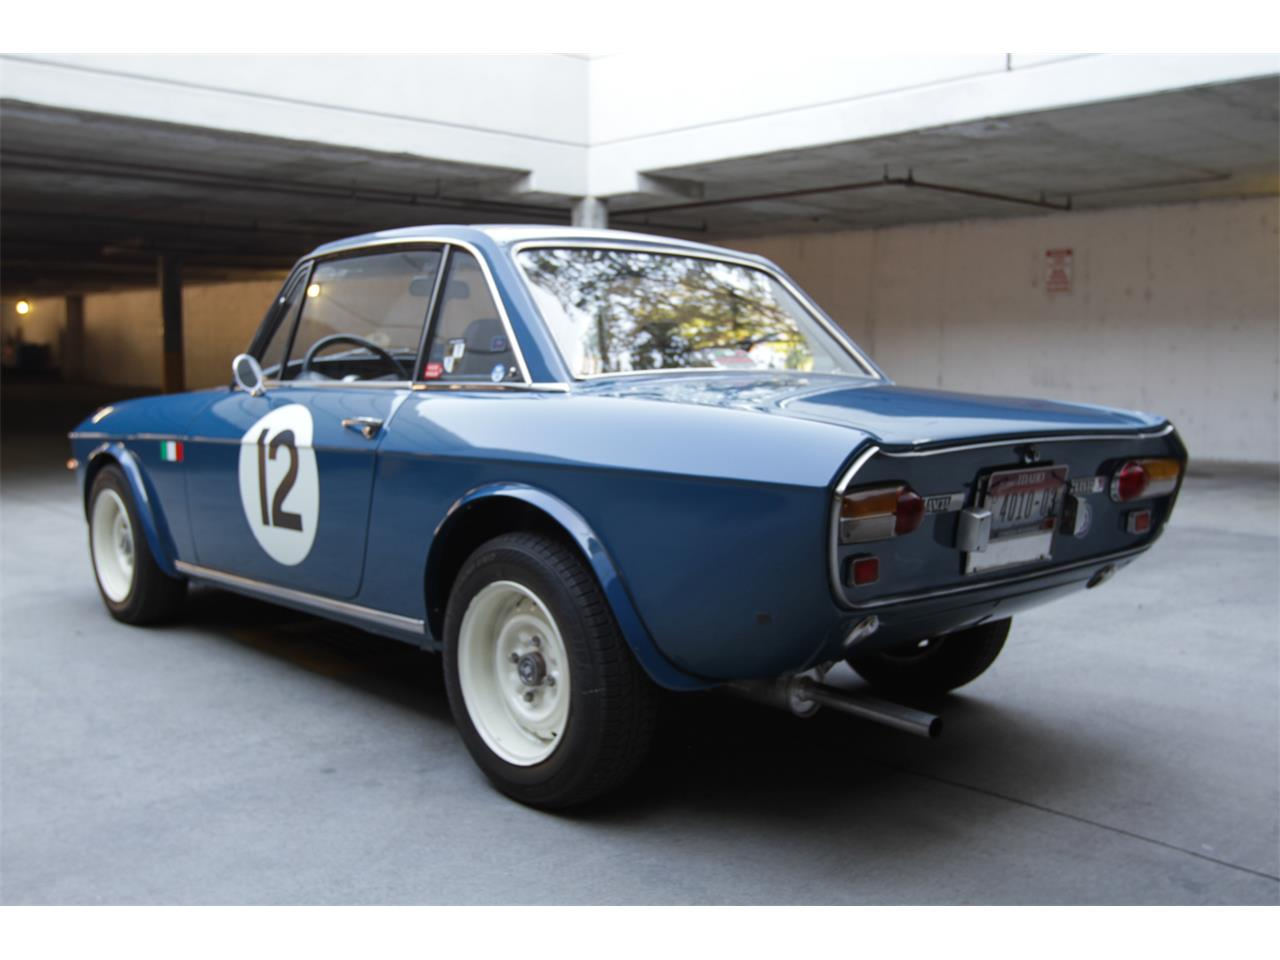 Large Picture of 1975 Fulvia located in Boise Idaho - OHR3